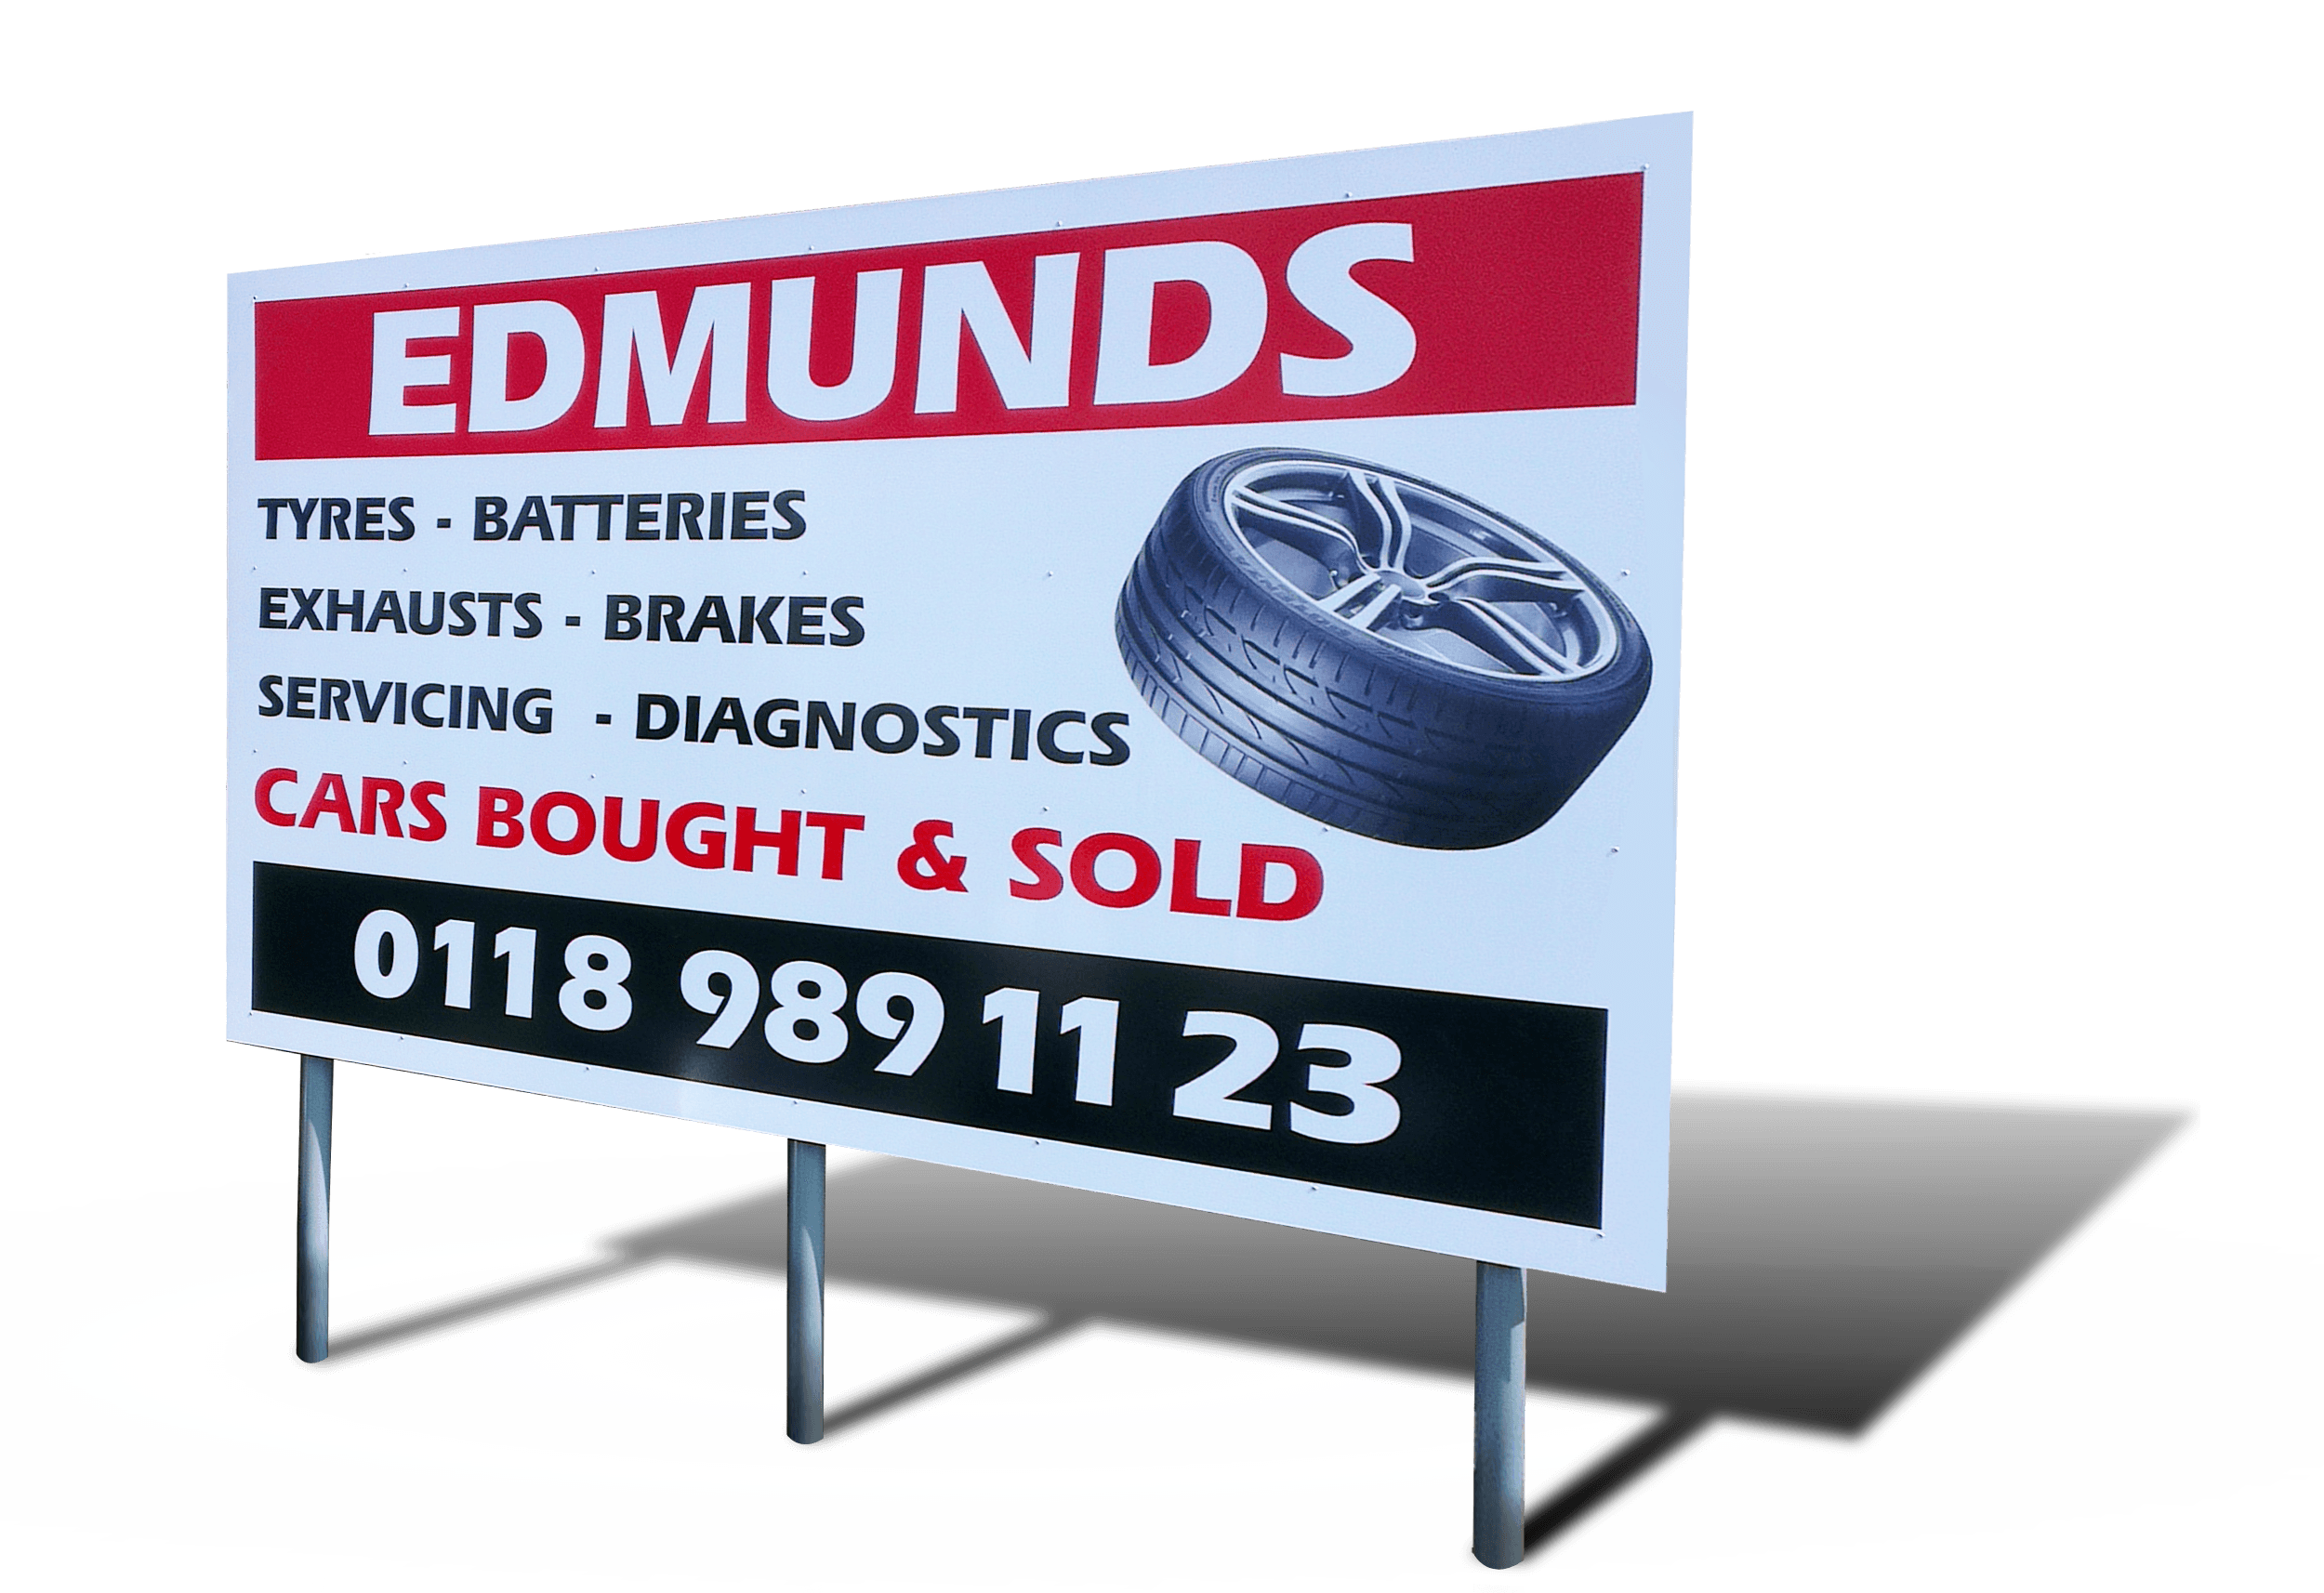 EDMUNDS exterior sign